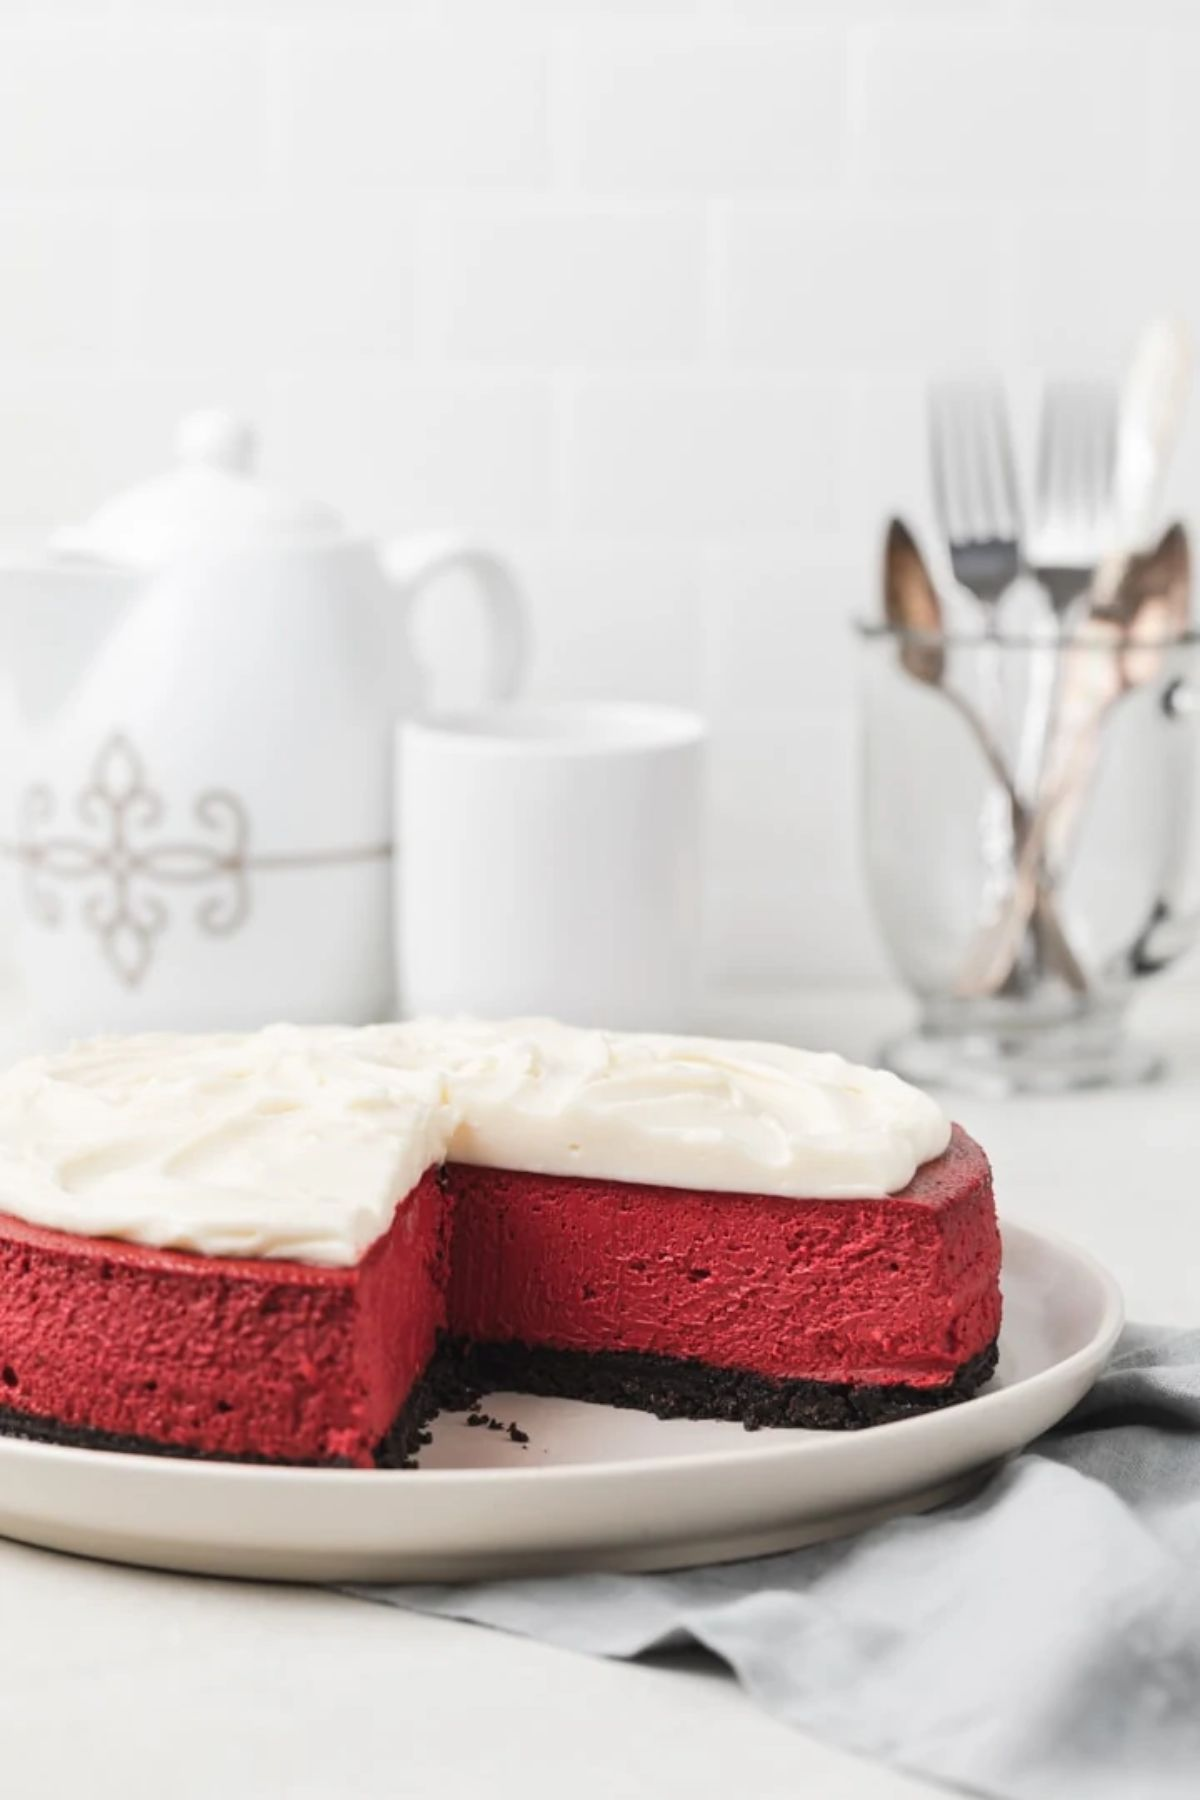 In front of a white china tea set is a red velvet cheeskecake with cream topping anfd a missingslice